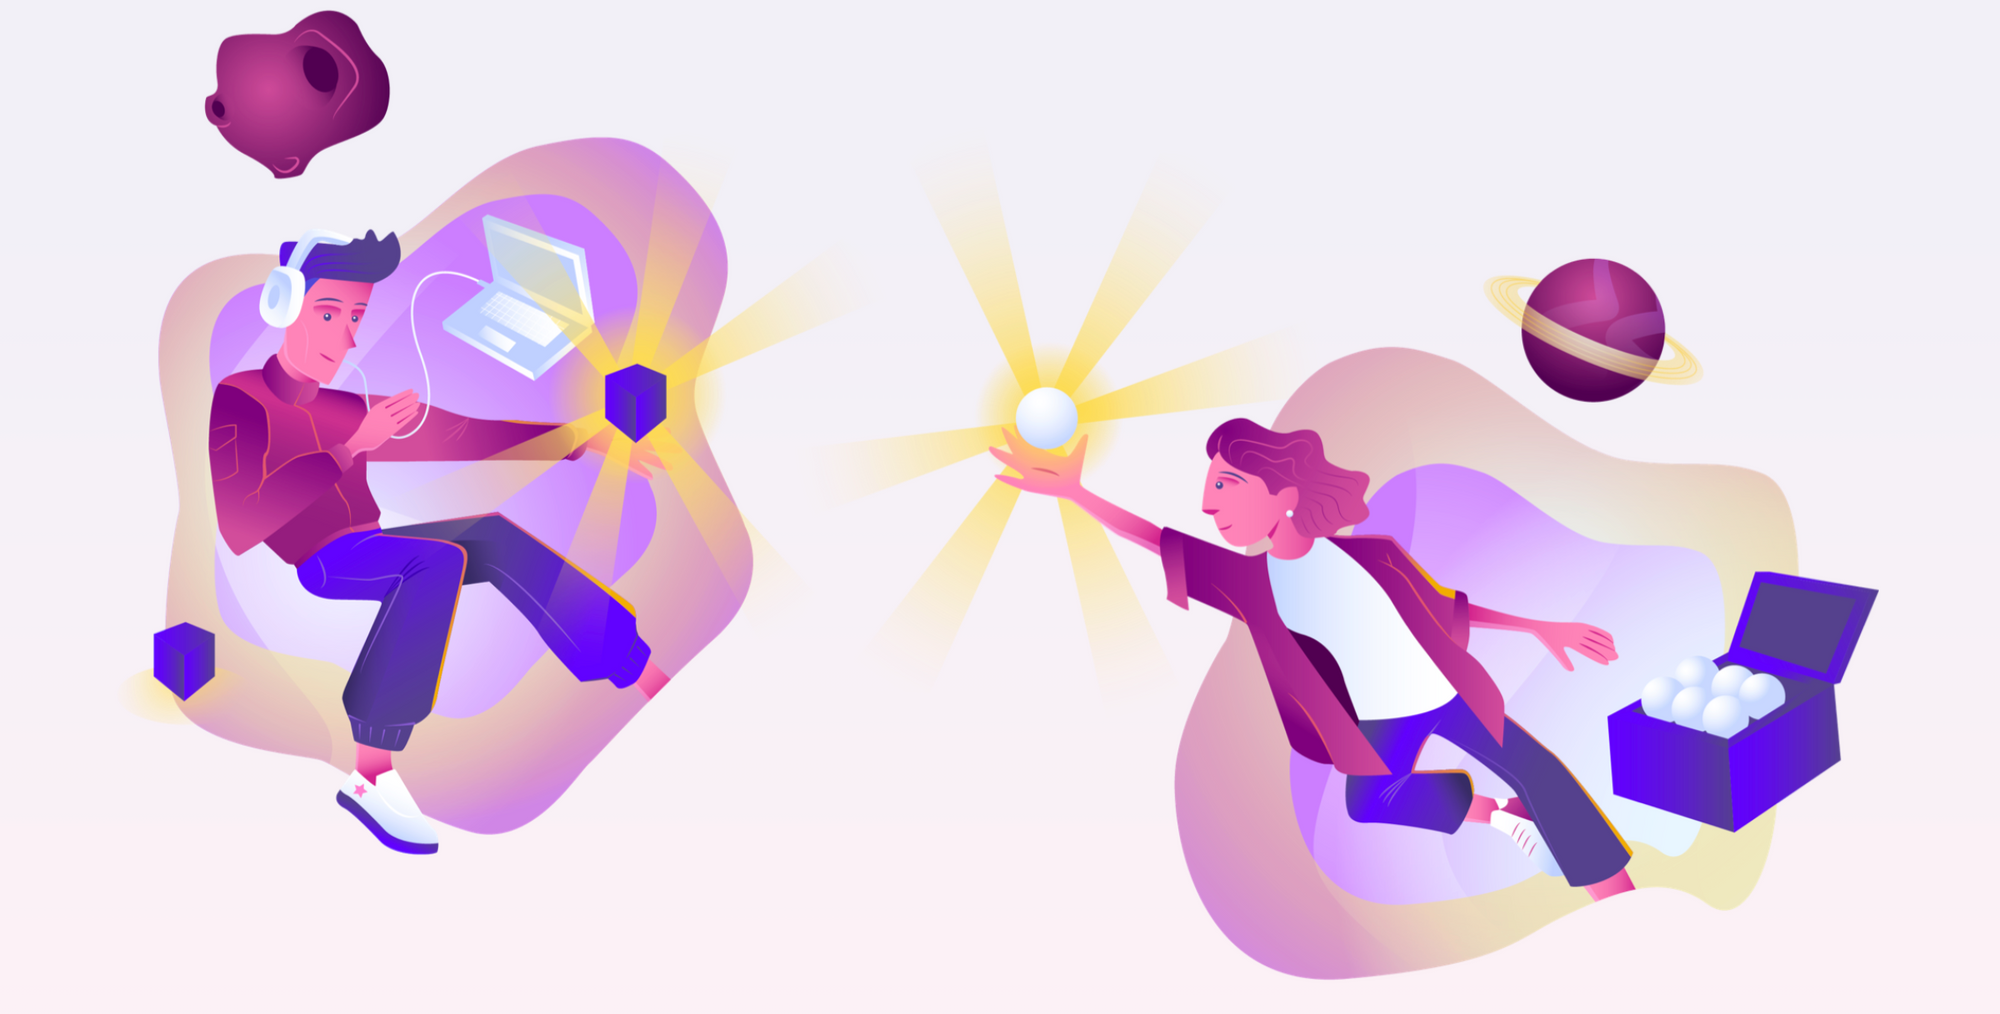 Abstract illustration of a two people. A man at a computer holding a glowing cube, and a woman holding a glowing ball they have taken from a box.